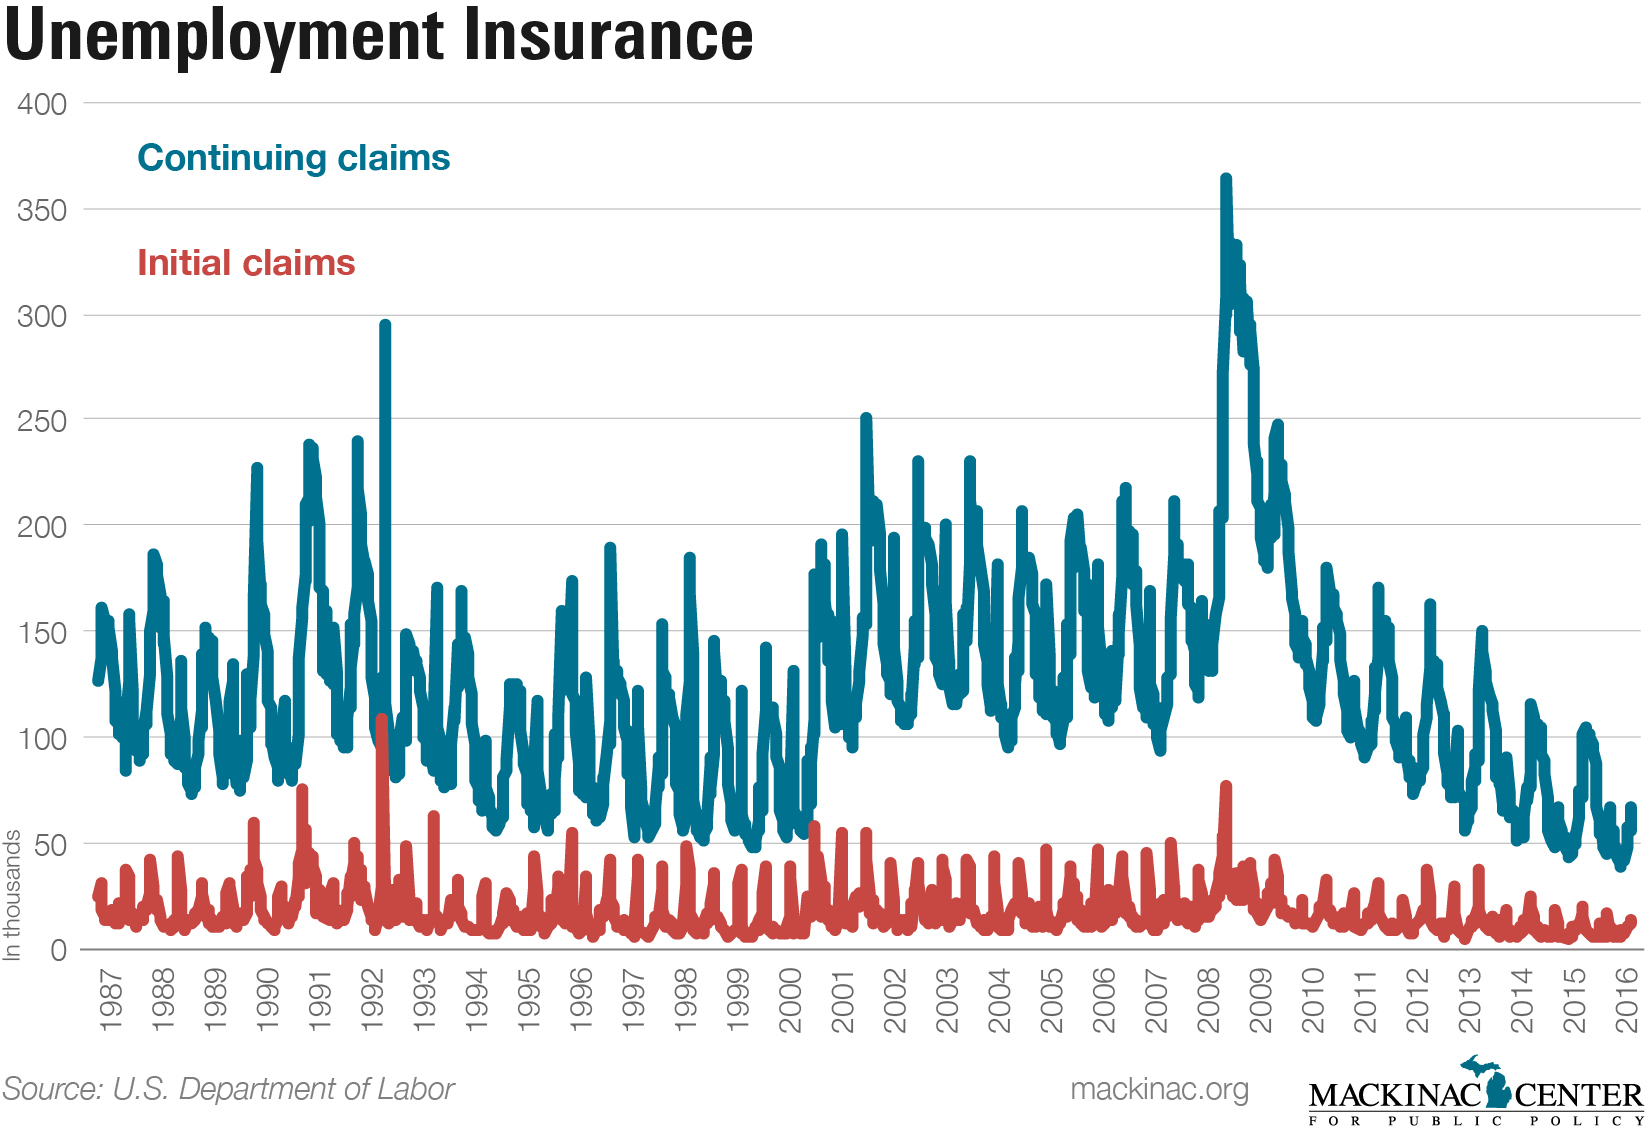 Unemployment Insurance - click to enlarge